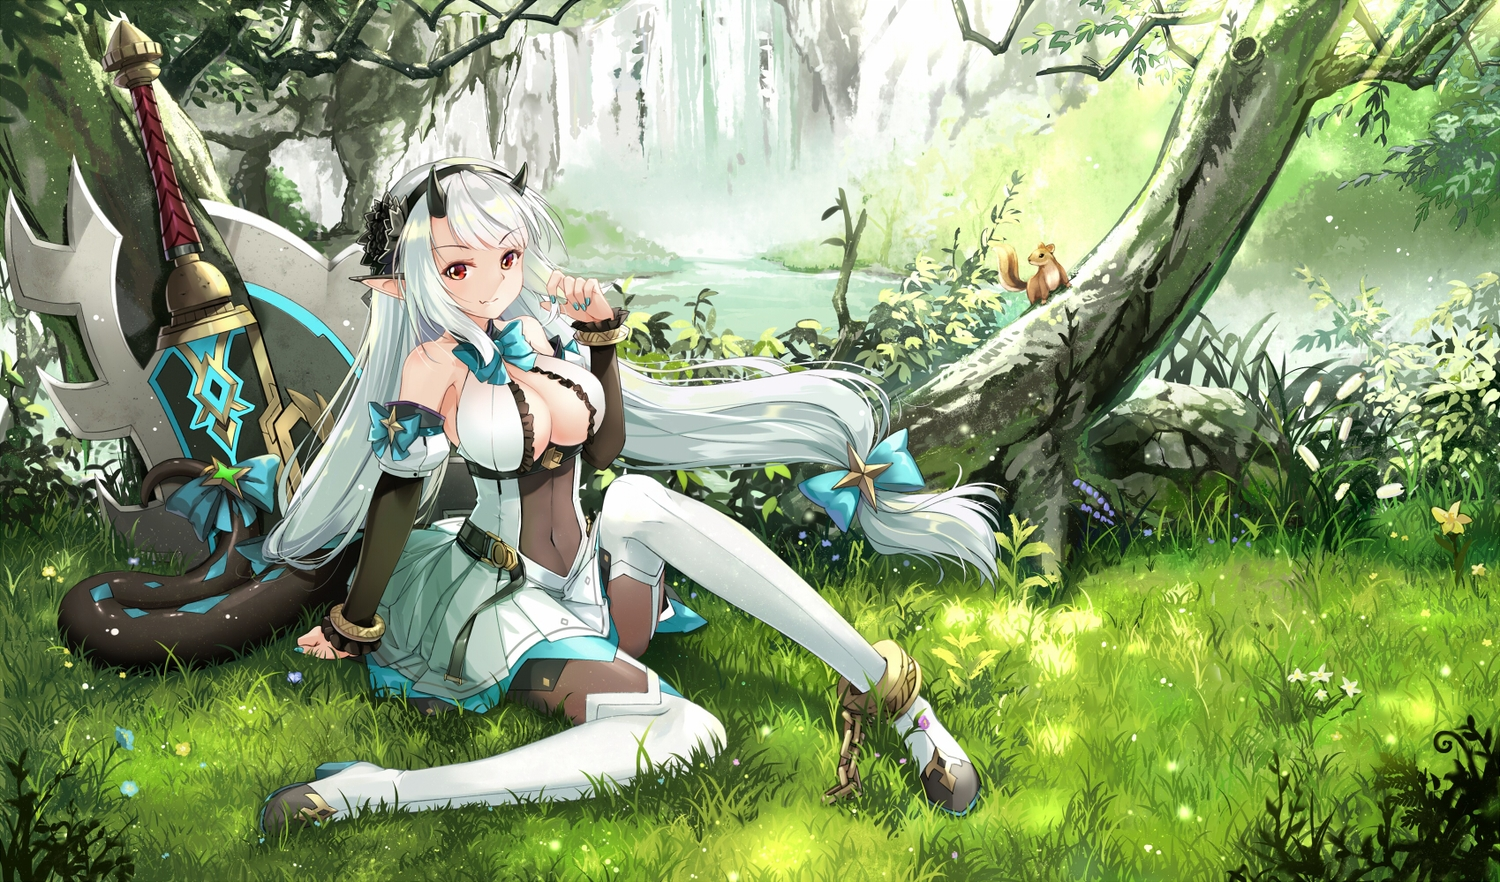 breasts chain cleavage cloudy.r demon epic7 fang forest horns long_hair pantyhose pointed_ears red_eyes sword tail tree weapon white_hair yufine_(epic7)